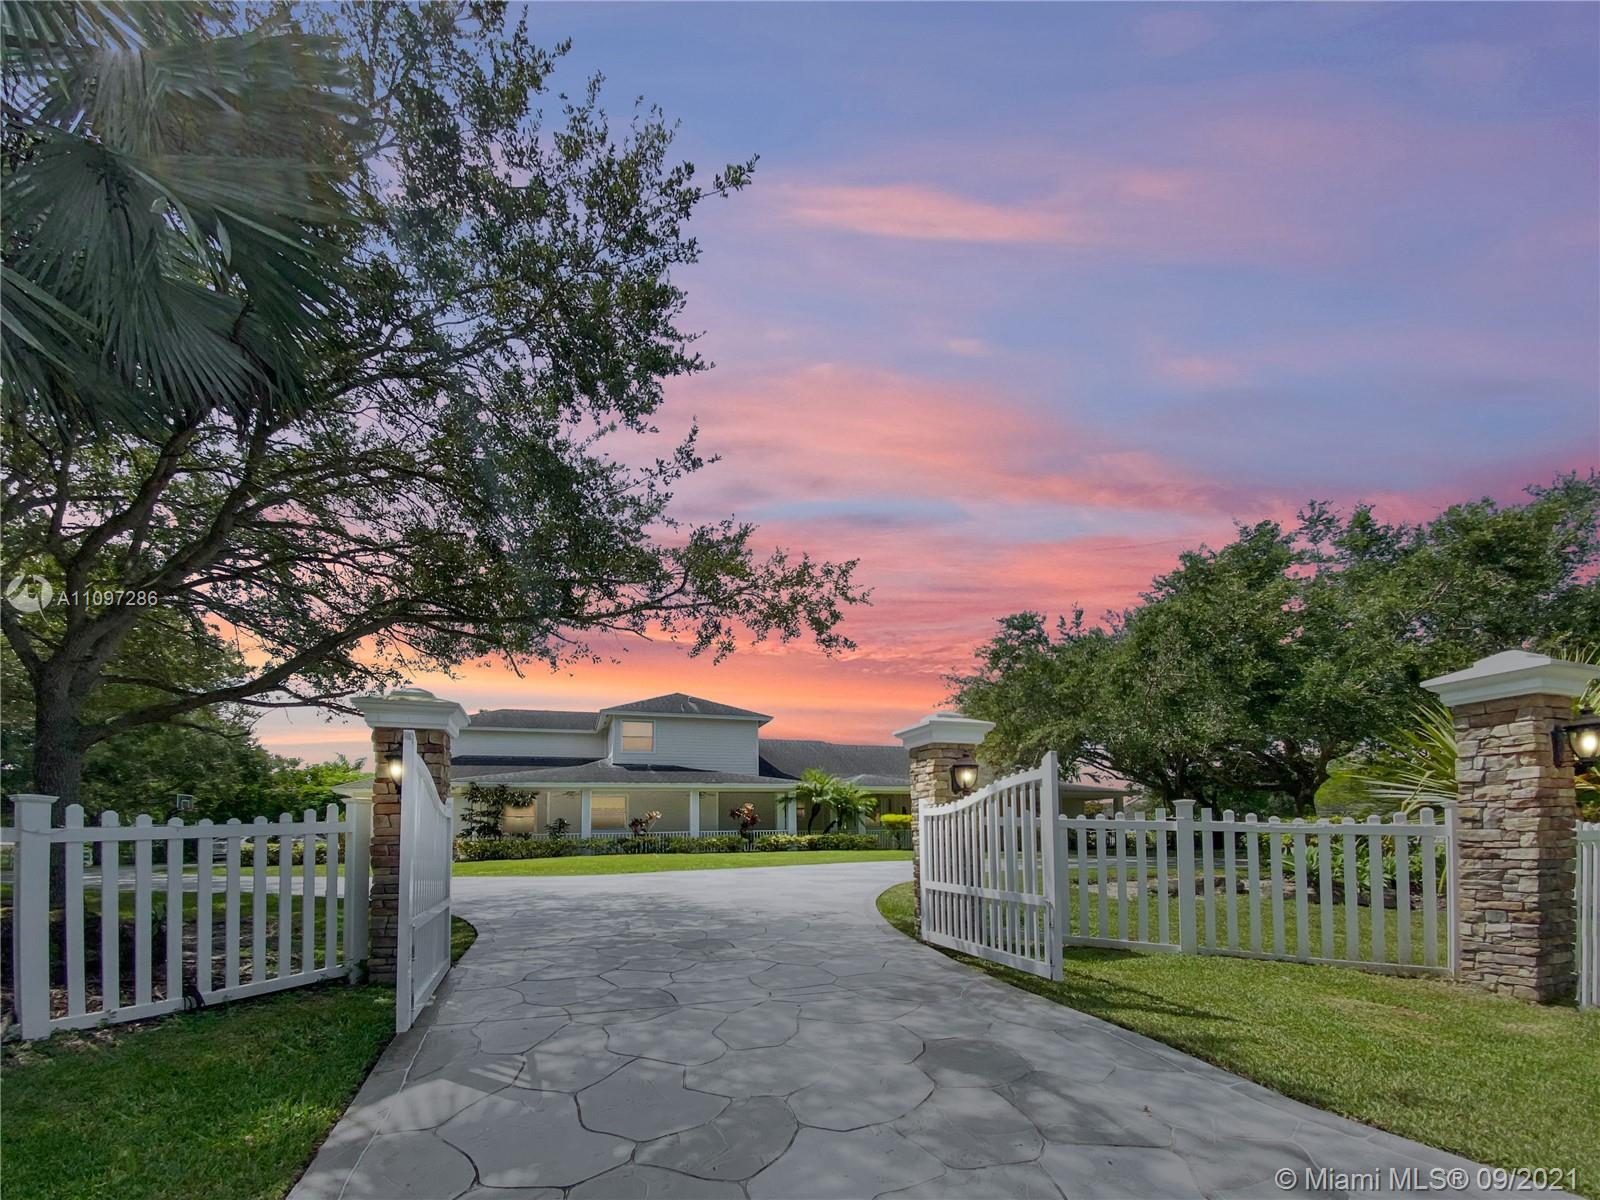 Rolling Oaks, 17810 SW 52nd Ct, Southwest Ranches, Florida 33331